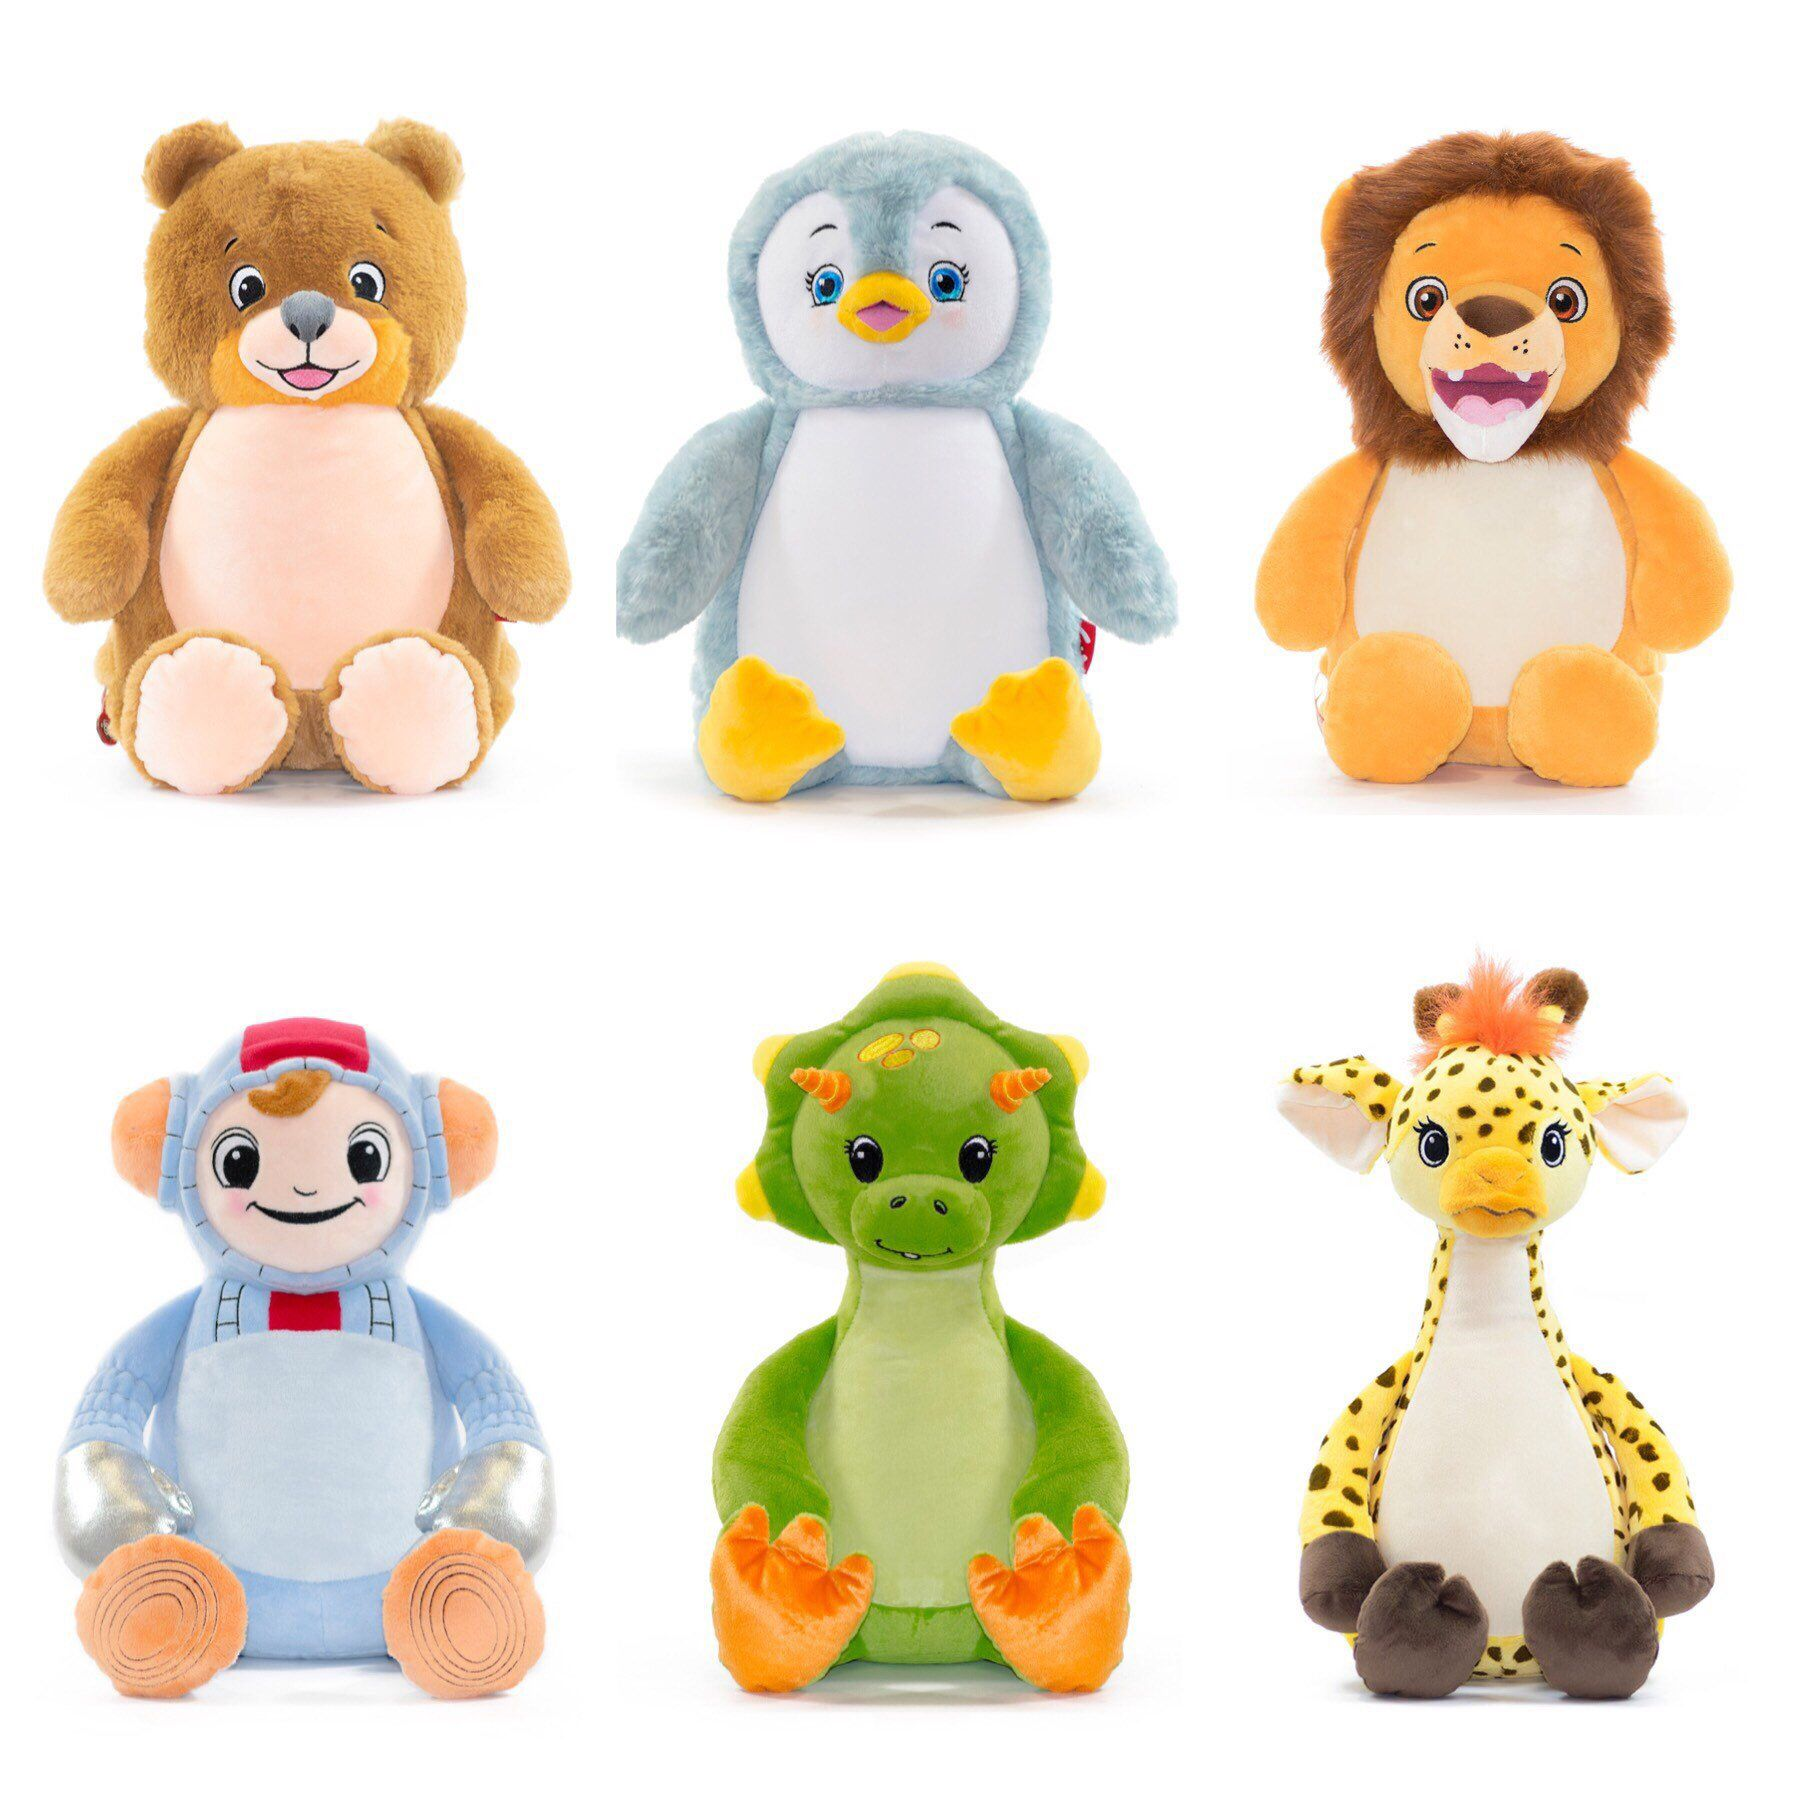 Personalized Plush Animals Embroidered Stuffed Animals Cubbies Plush Toys Kids Gift Cute Penguin